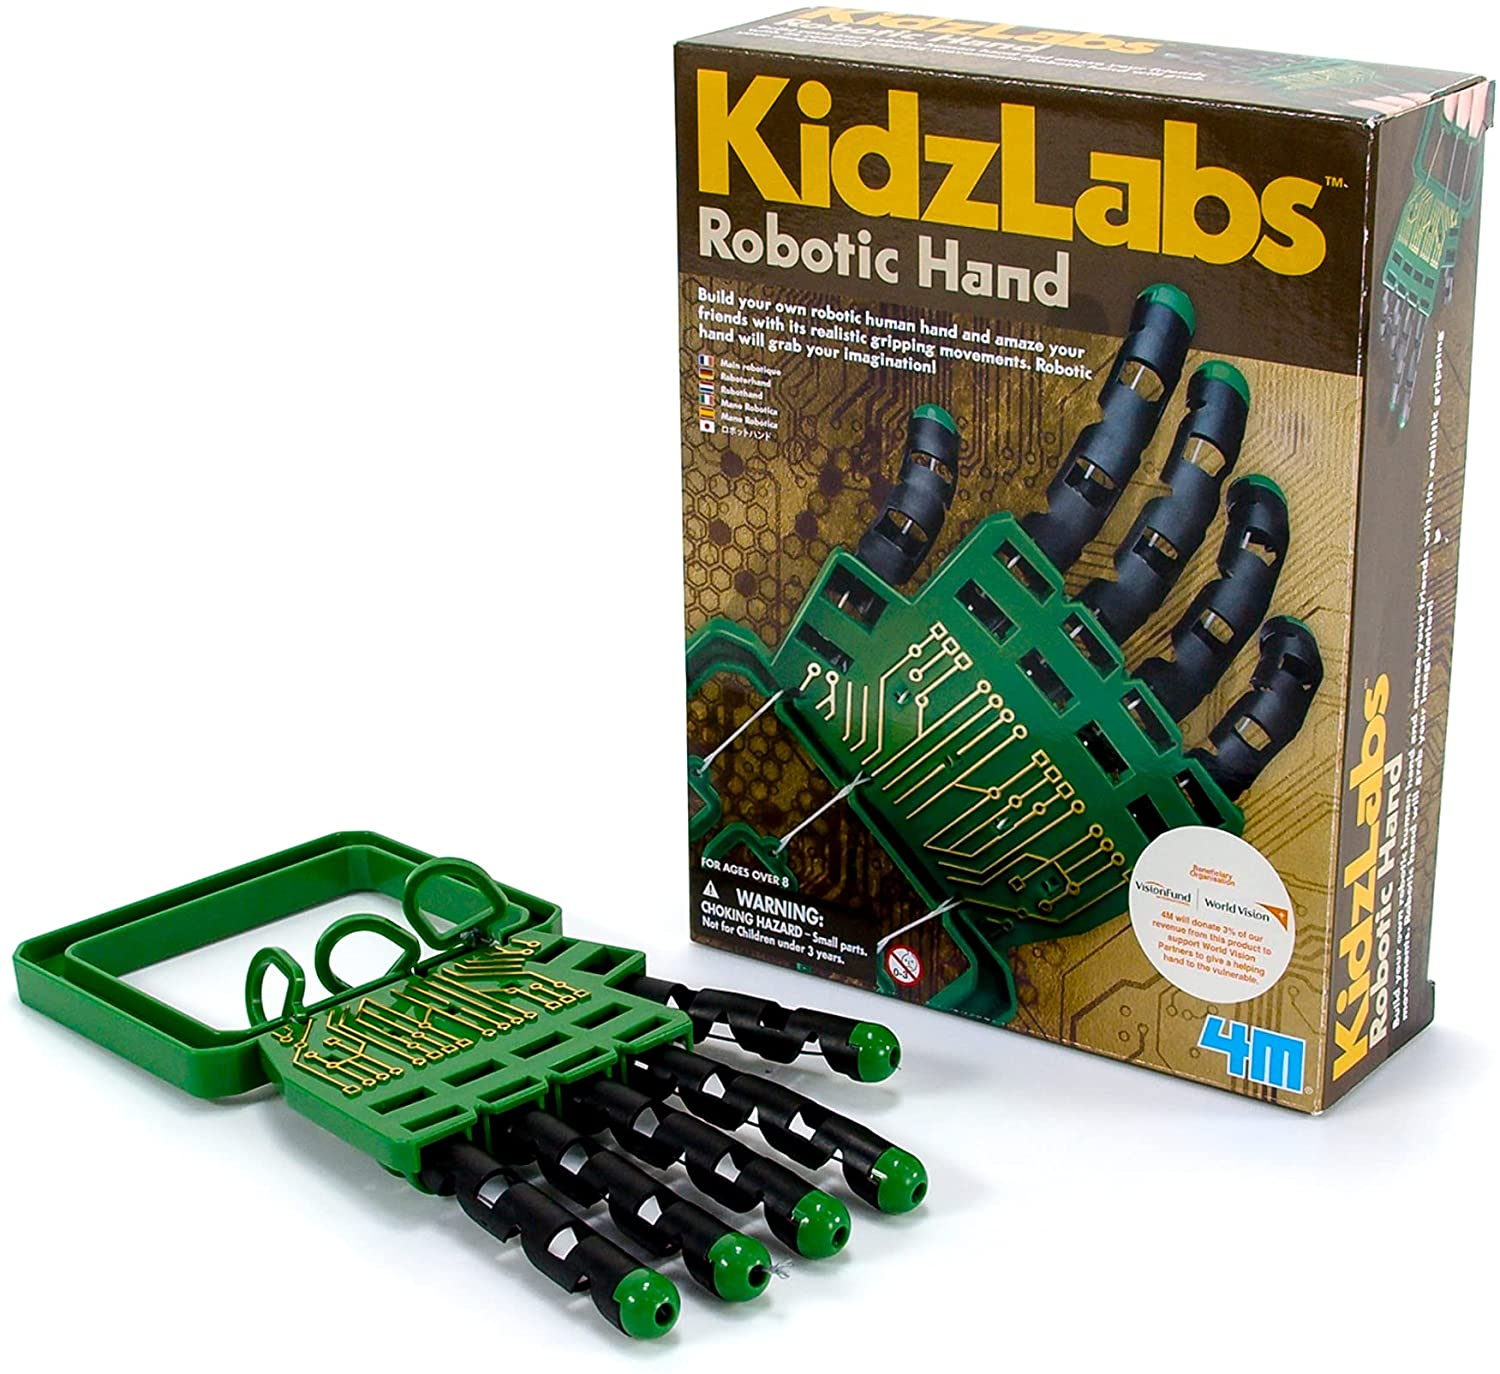 robotic hand for kids to build